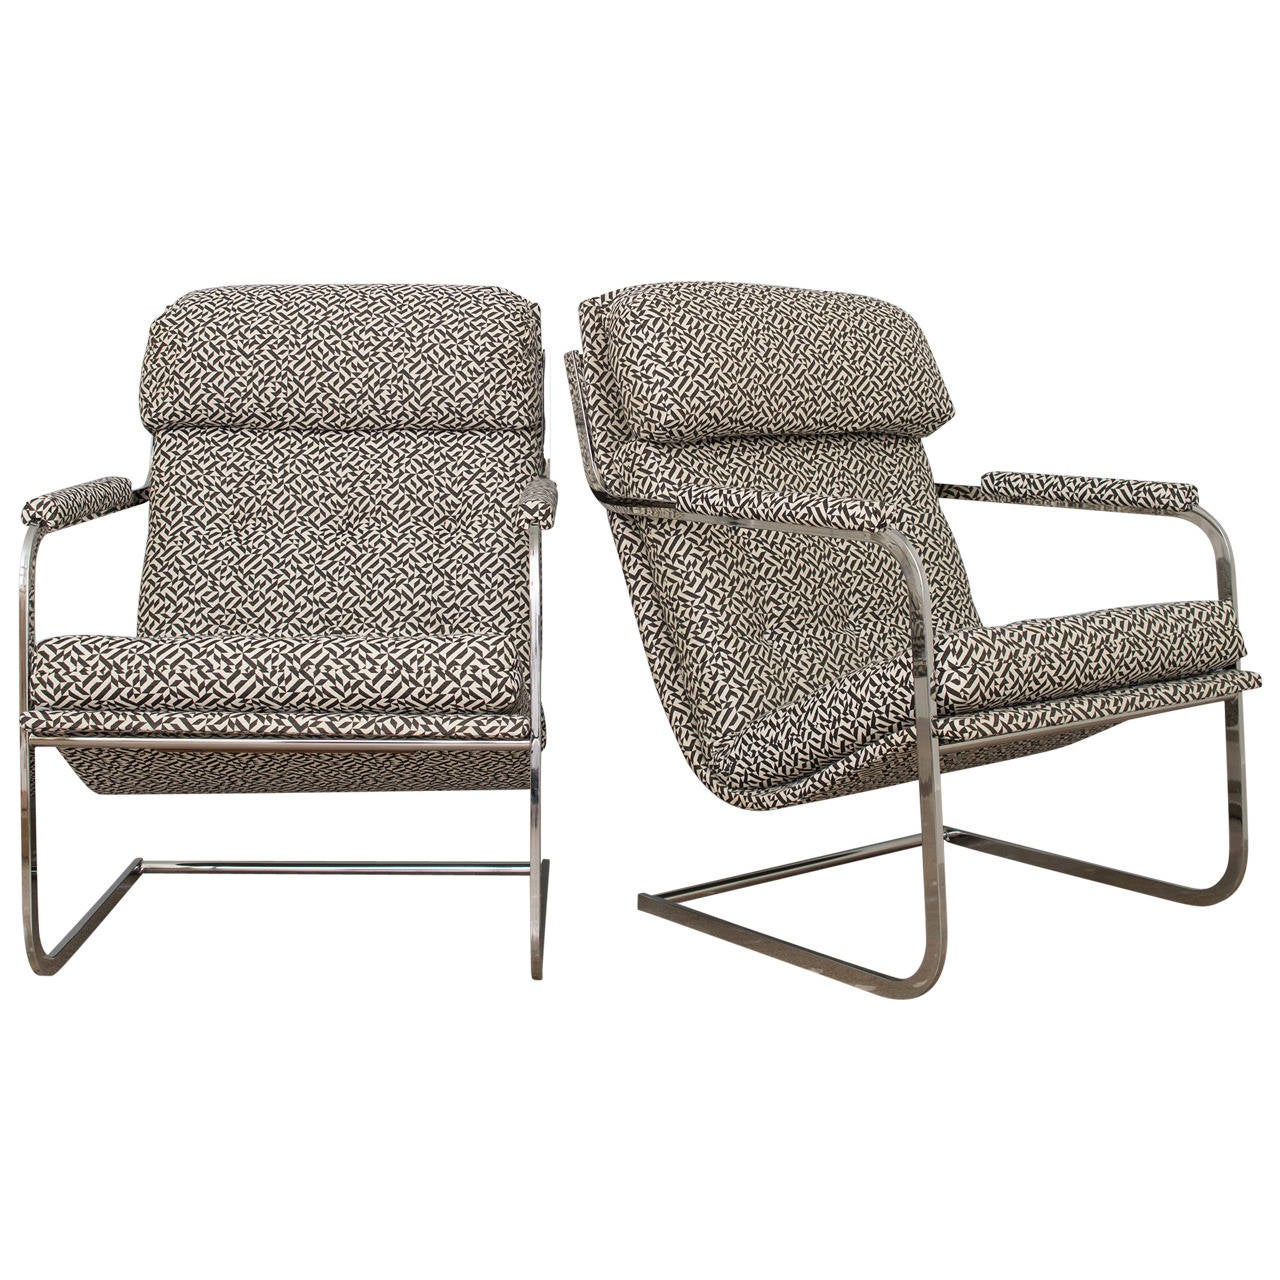 Carsons of high point cantilevered chrome chairs for sale for Carson chaise lounge